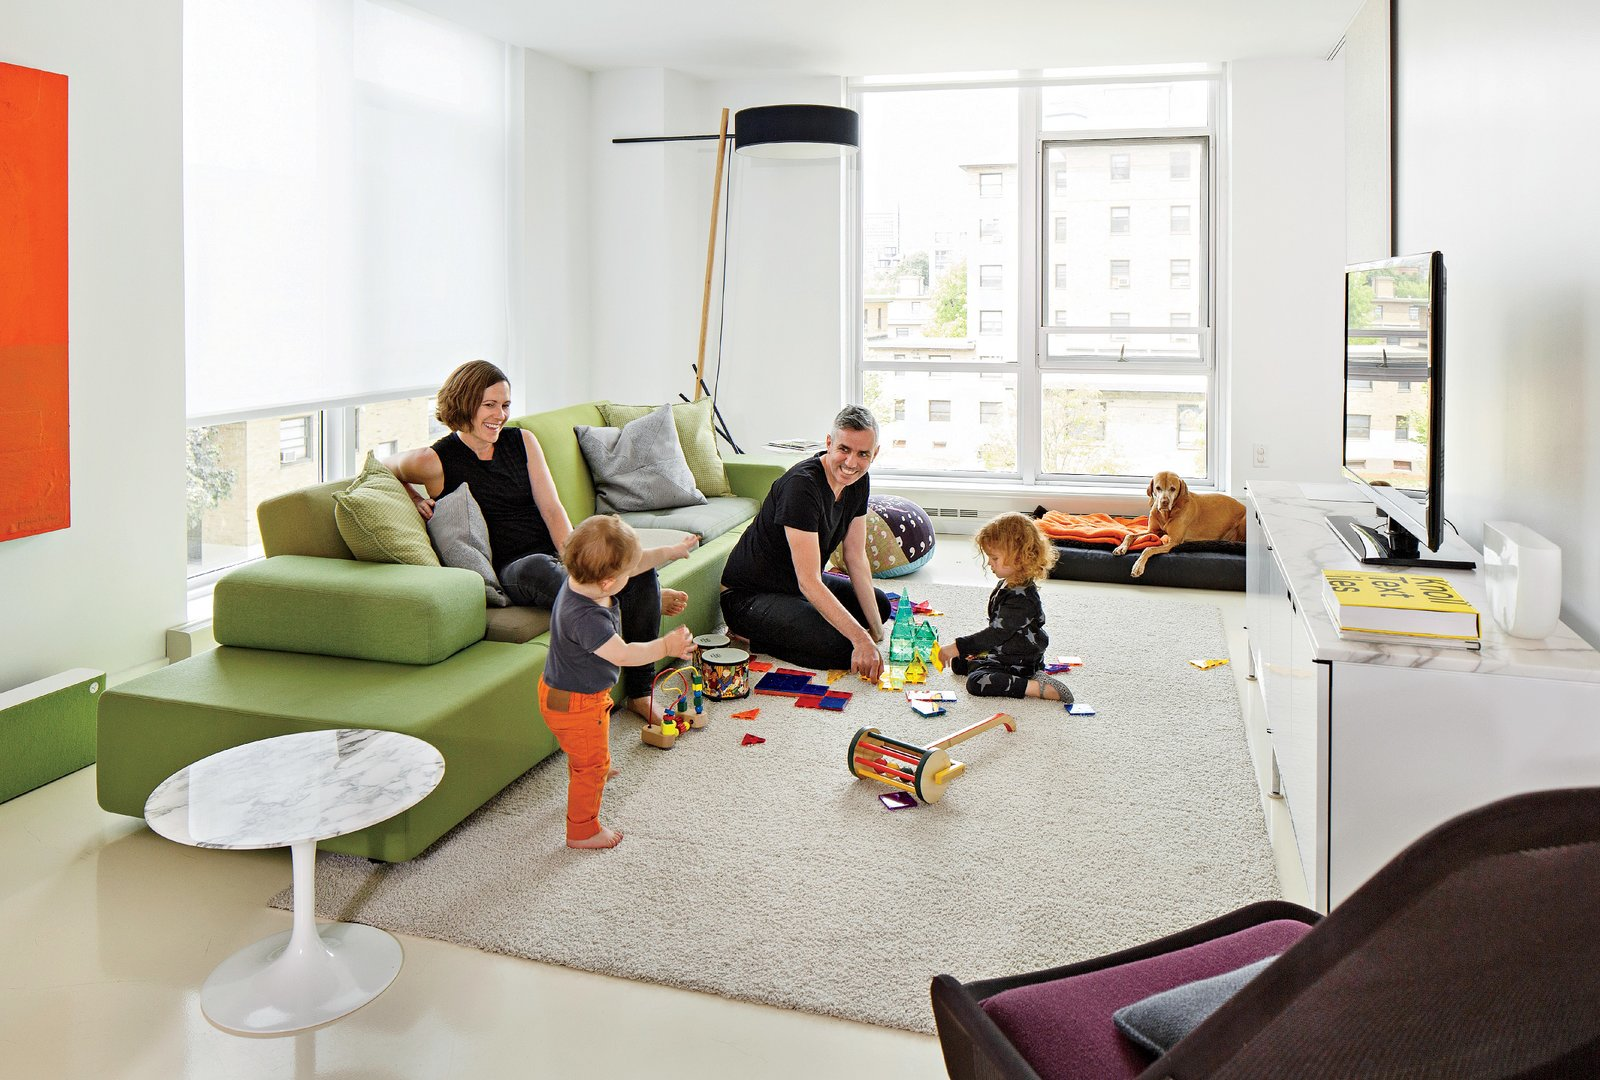 Smith, Grimley, Roen, and Mae gather around a Polder Sofa XL by Hella Jongerius for Vitra. The marble Saarinen side table is from Knoll and the Slow chair is by Ronan & Erwan Bouroullec for Vitra. Boston Renovation Accents Minimalist White with Rich Felt Murals - Photo 4 of 8